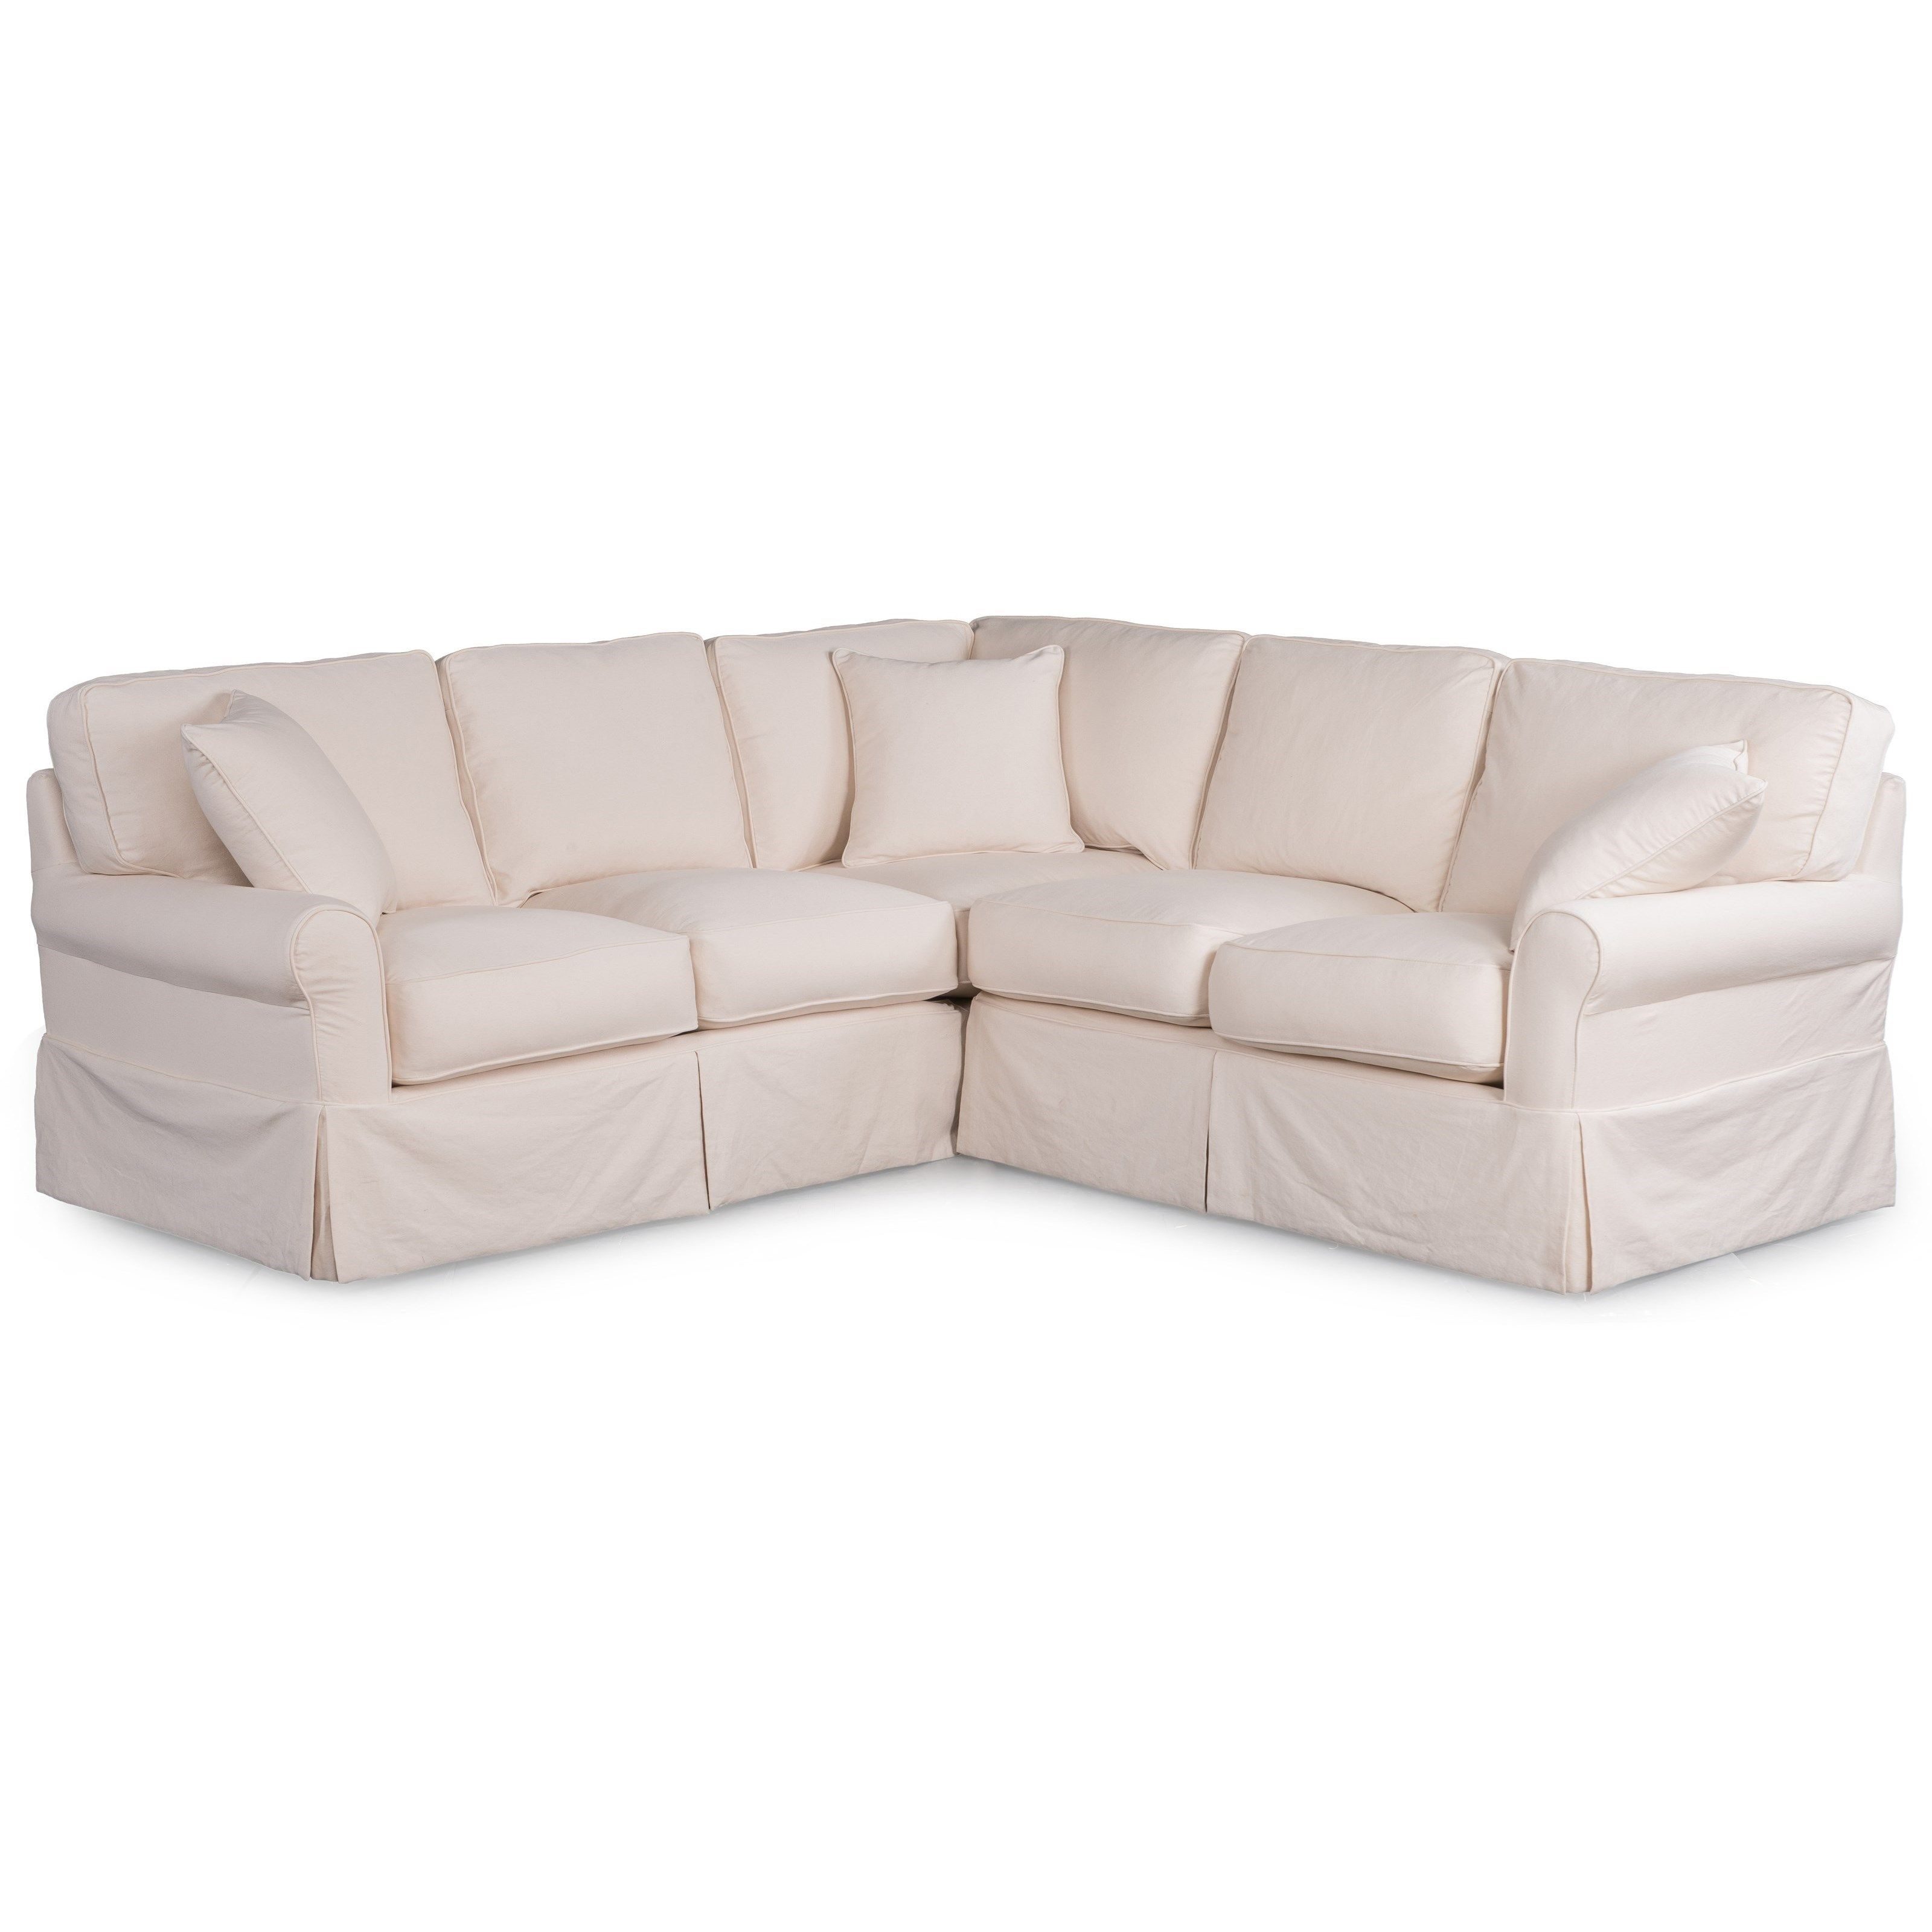 Magnificent Synergy Furniture Sectional Couch For Sale Bobs Inzonedesignstudio Interior Chair Design Inzonedesignstudiocom